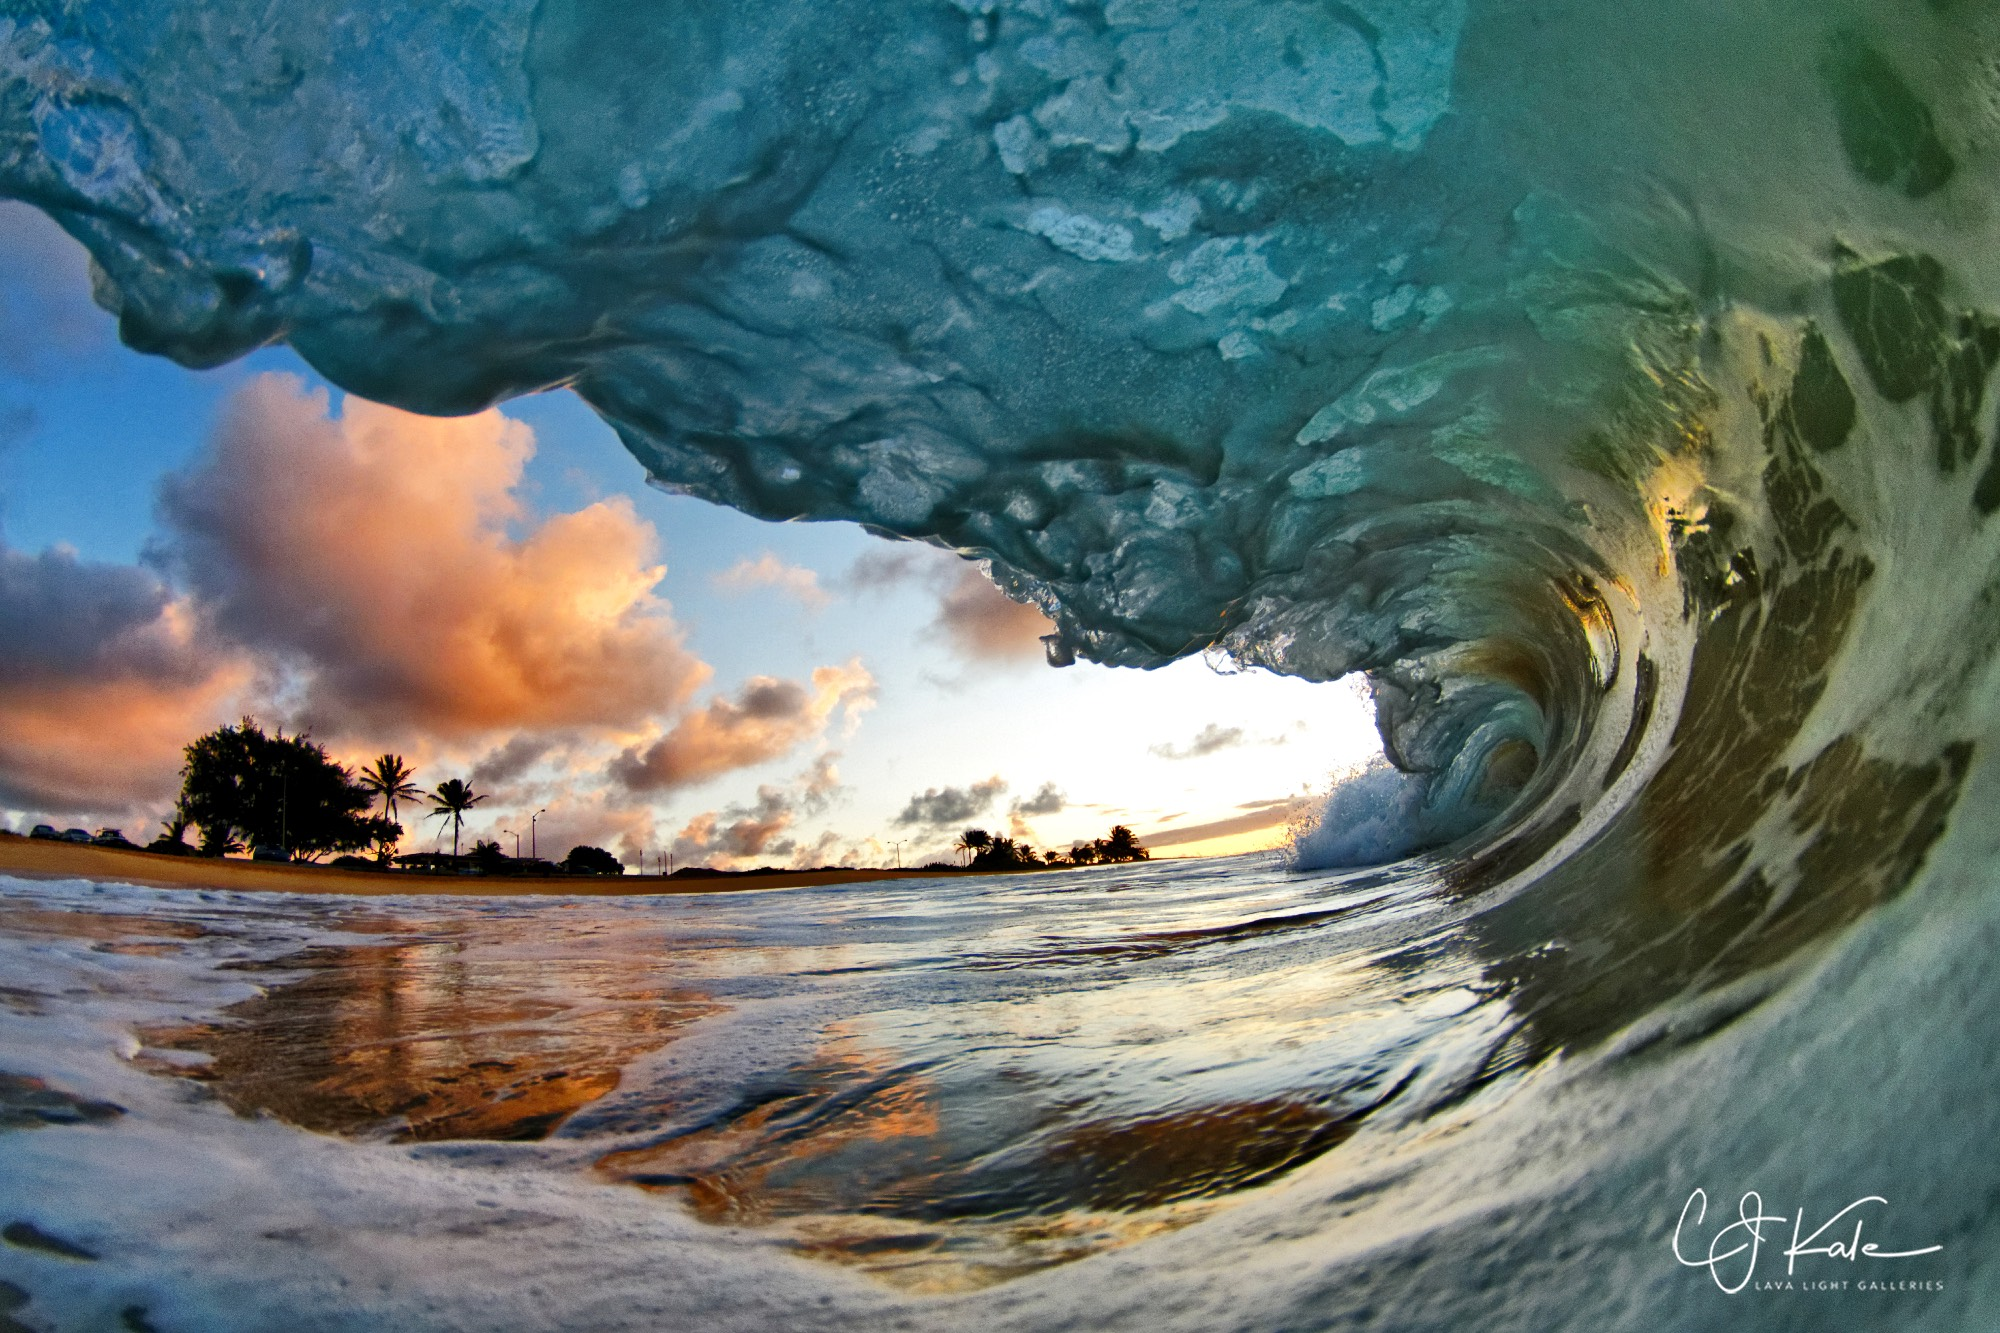 Love to be in the barrel.